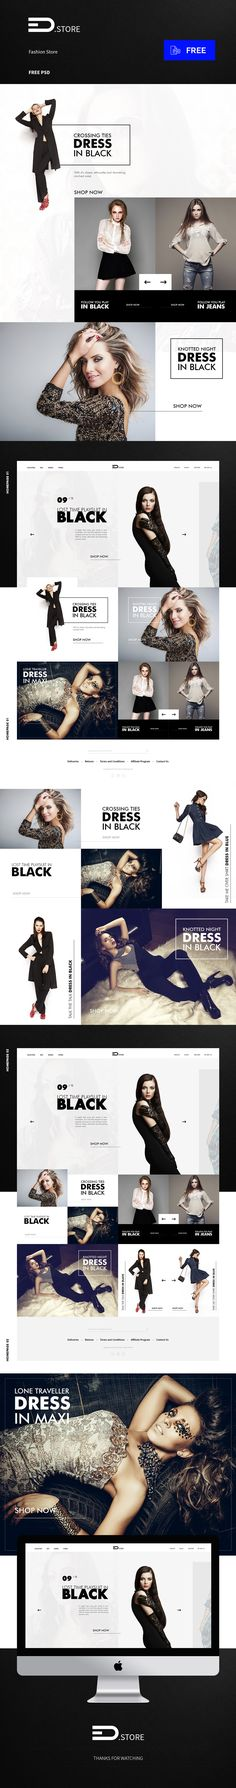 http://getcraftwork.com/edstore-fashion-store/ EDStore – Fashion Store Landing page for the Fashion Store created by Orkan Çep.